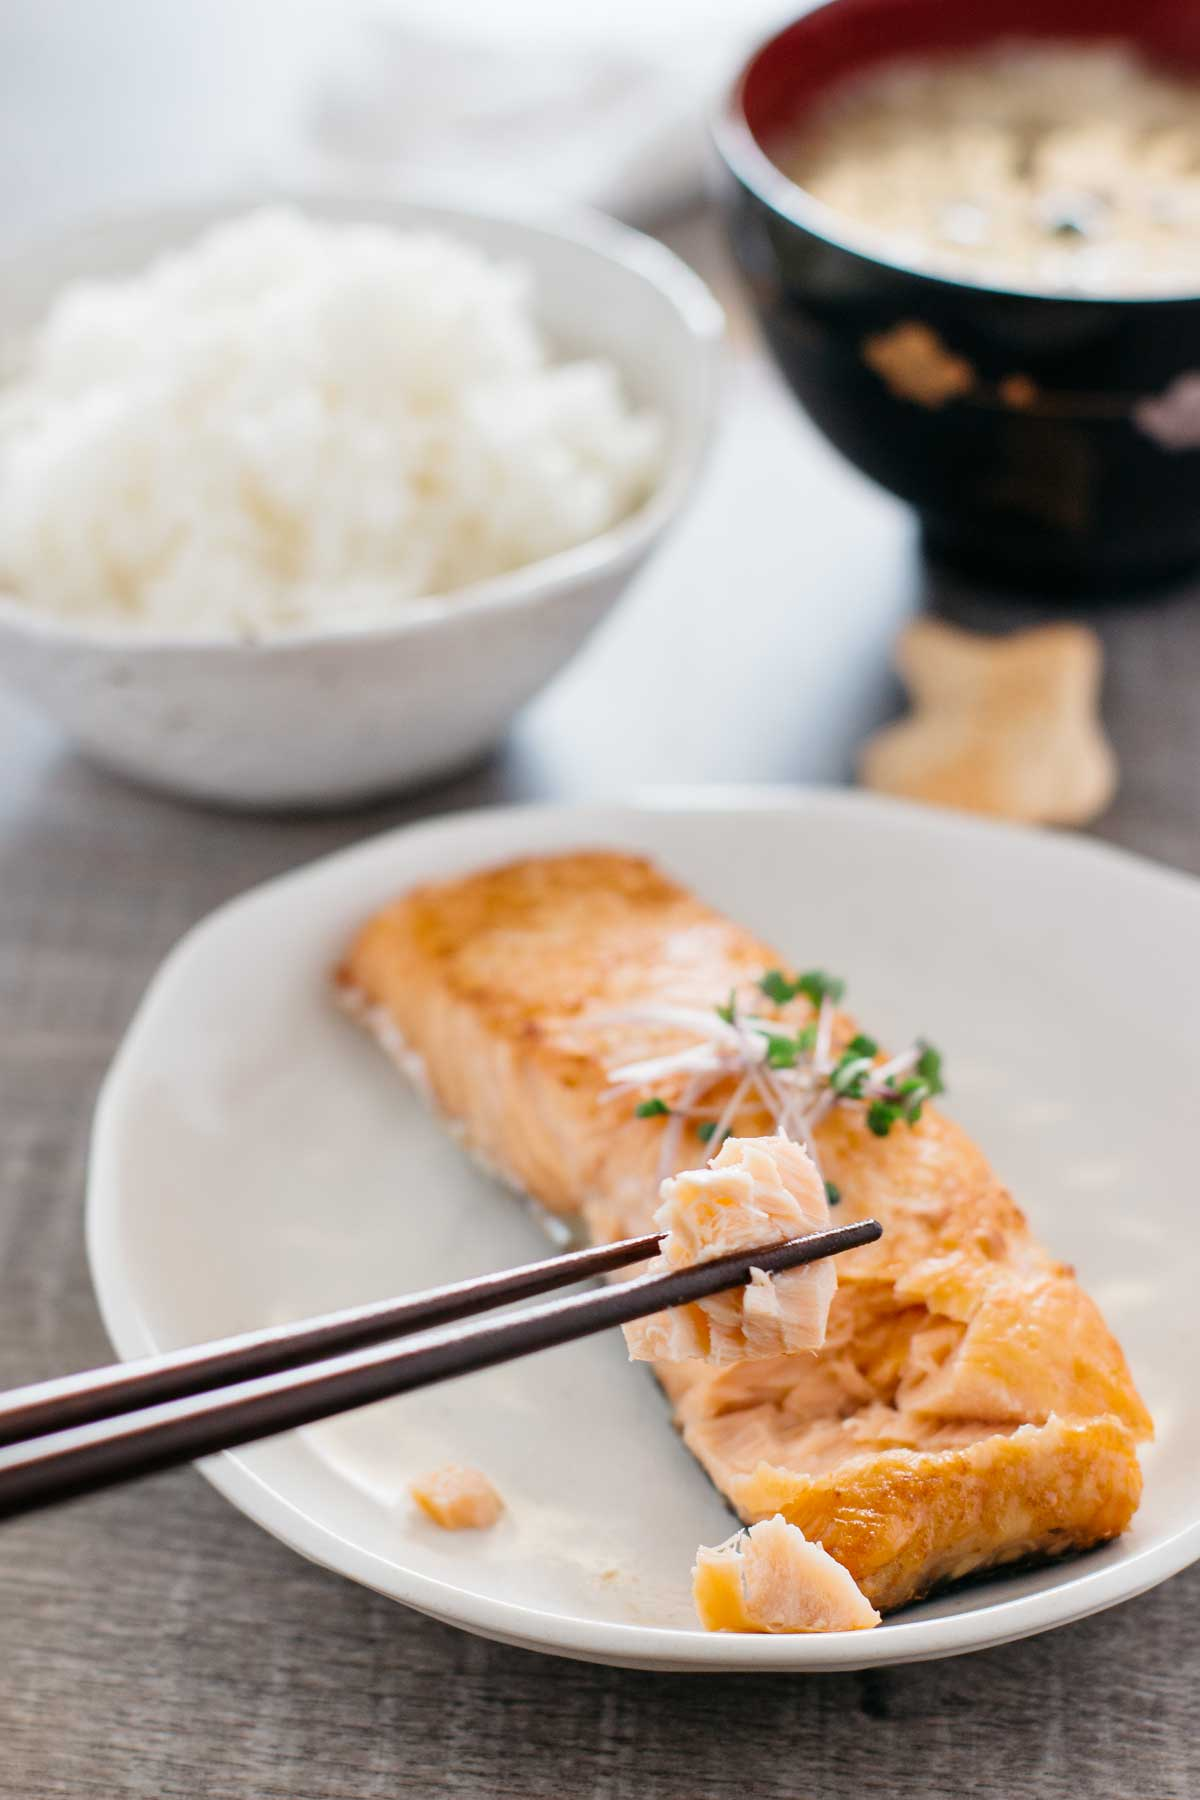 Until I Came To Live In Australia, I Have Never Ever Had Salmon Cooked In A  Different Way From Salted I Believed Salted Salmon Is The Only Way To Cook  And